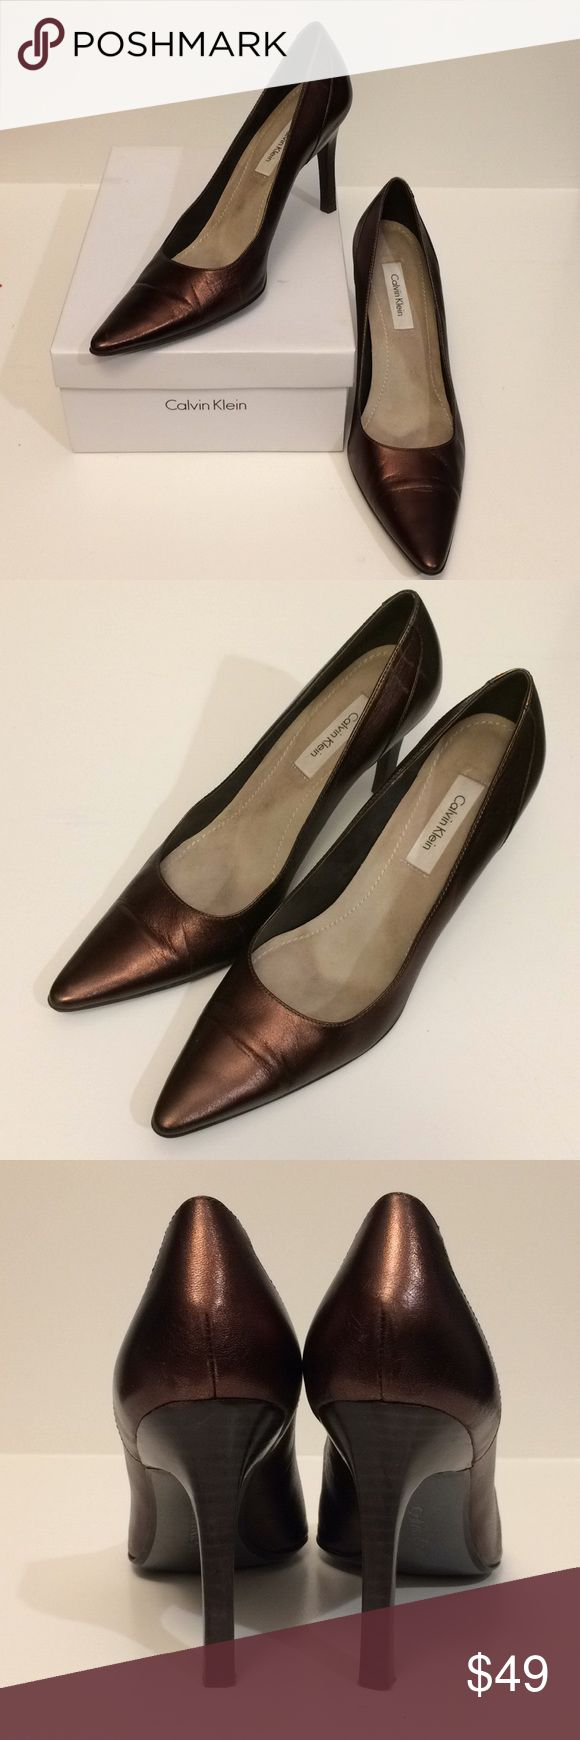 Calvin Klein Lucia Leather Pump Brown Metallic 10M Calvin Klein Lucia Leather Pump, Brown Metallic, 10M. Decadent rich bronze metallic leather, gorgeous sheen. Dark brown wood stiletto heels. EUC. Loved & gently worn, leather in very good condition, heels taps nearly new, some creasing at toes and shoes & heels have a few minor scuffs (see pics). Comfortable yet sexy. Elegant pumps for desk to dinner, beautiful w/ a silk blouse & wide leg trousers or culottes, a pencil skirt, silky cami…